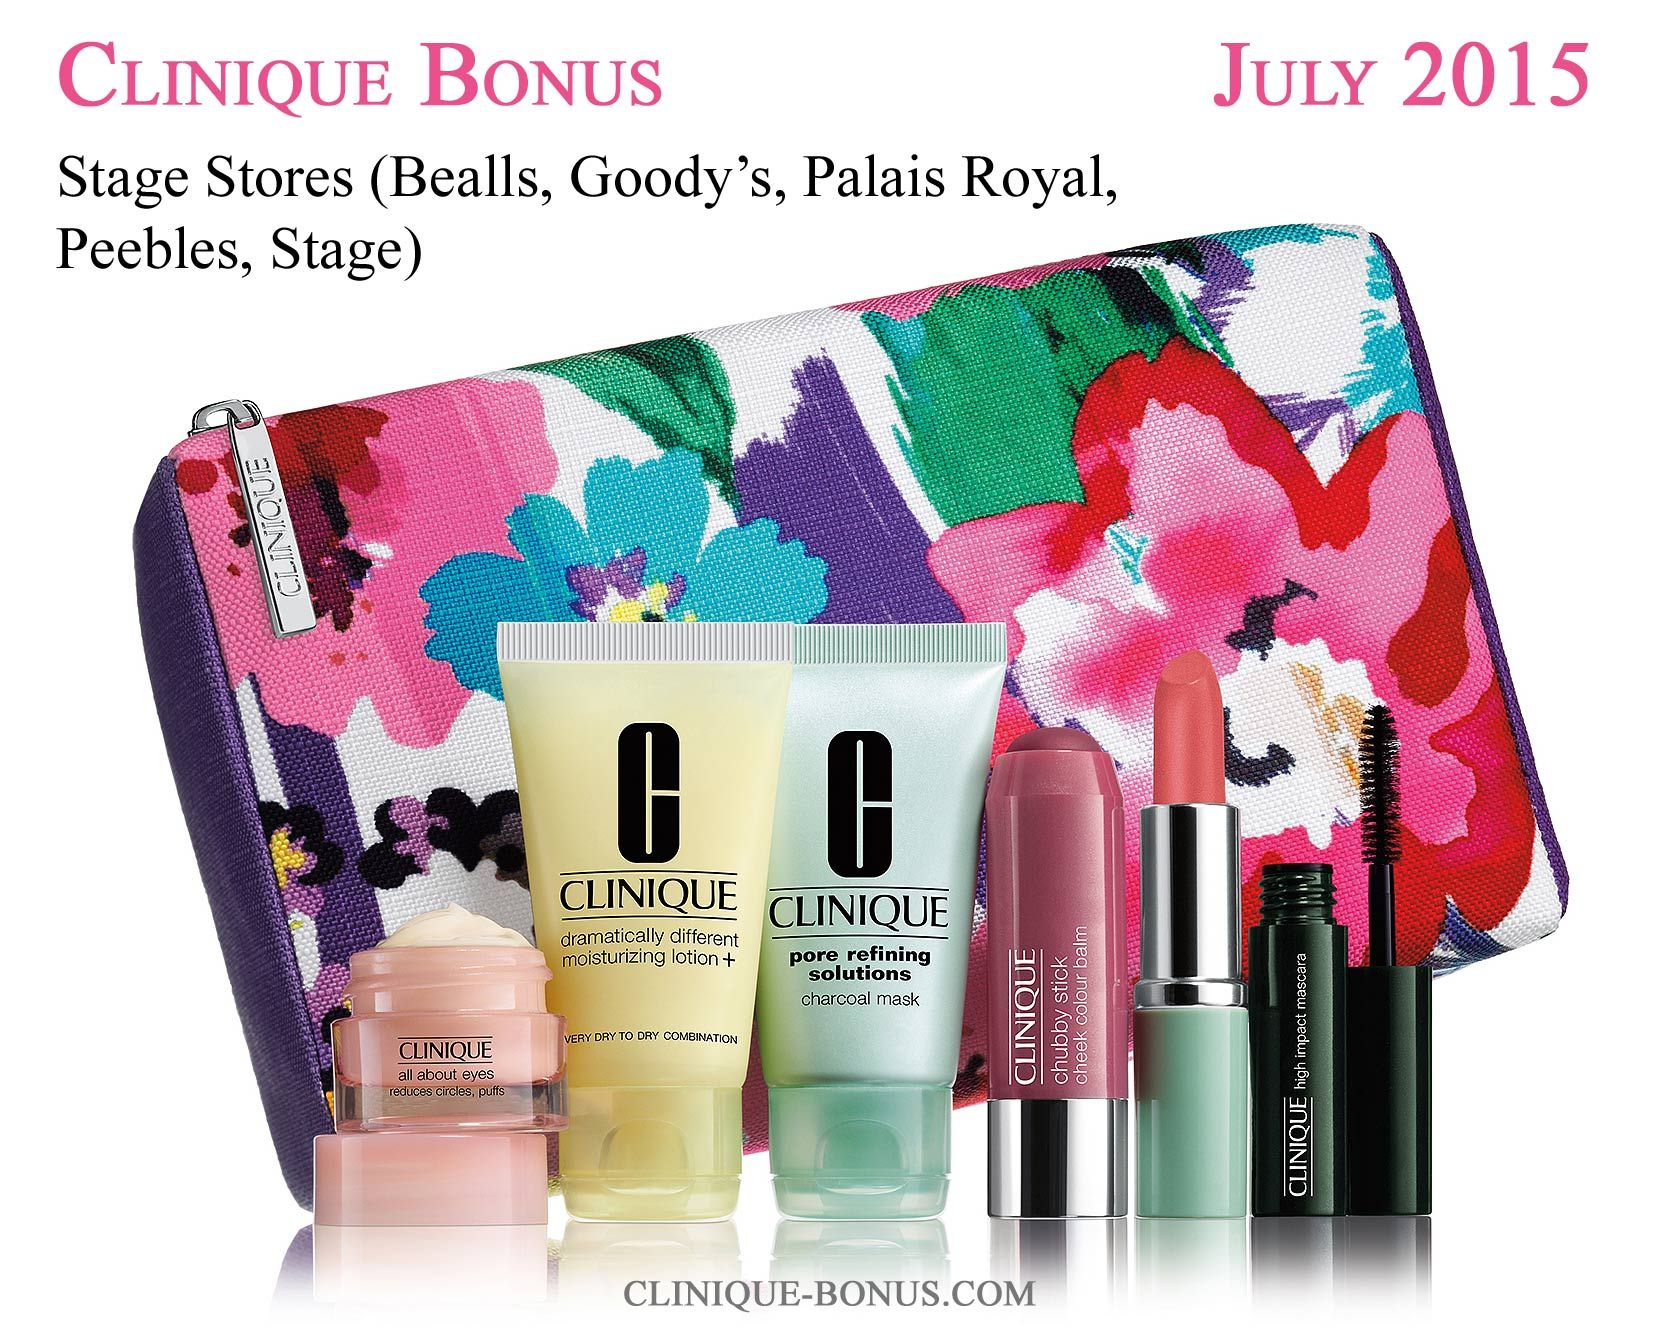 Other stores with Clinique bonus in United States